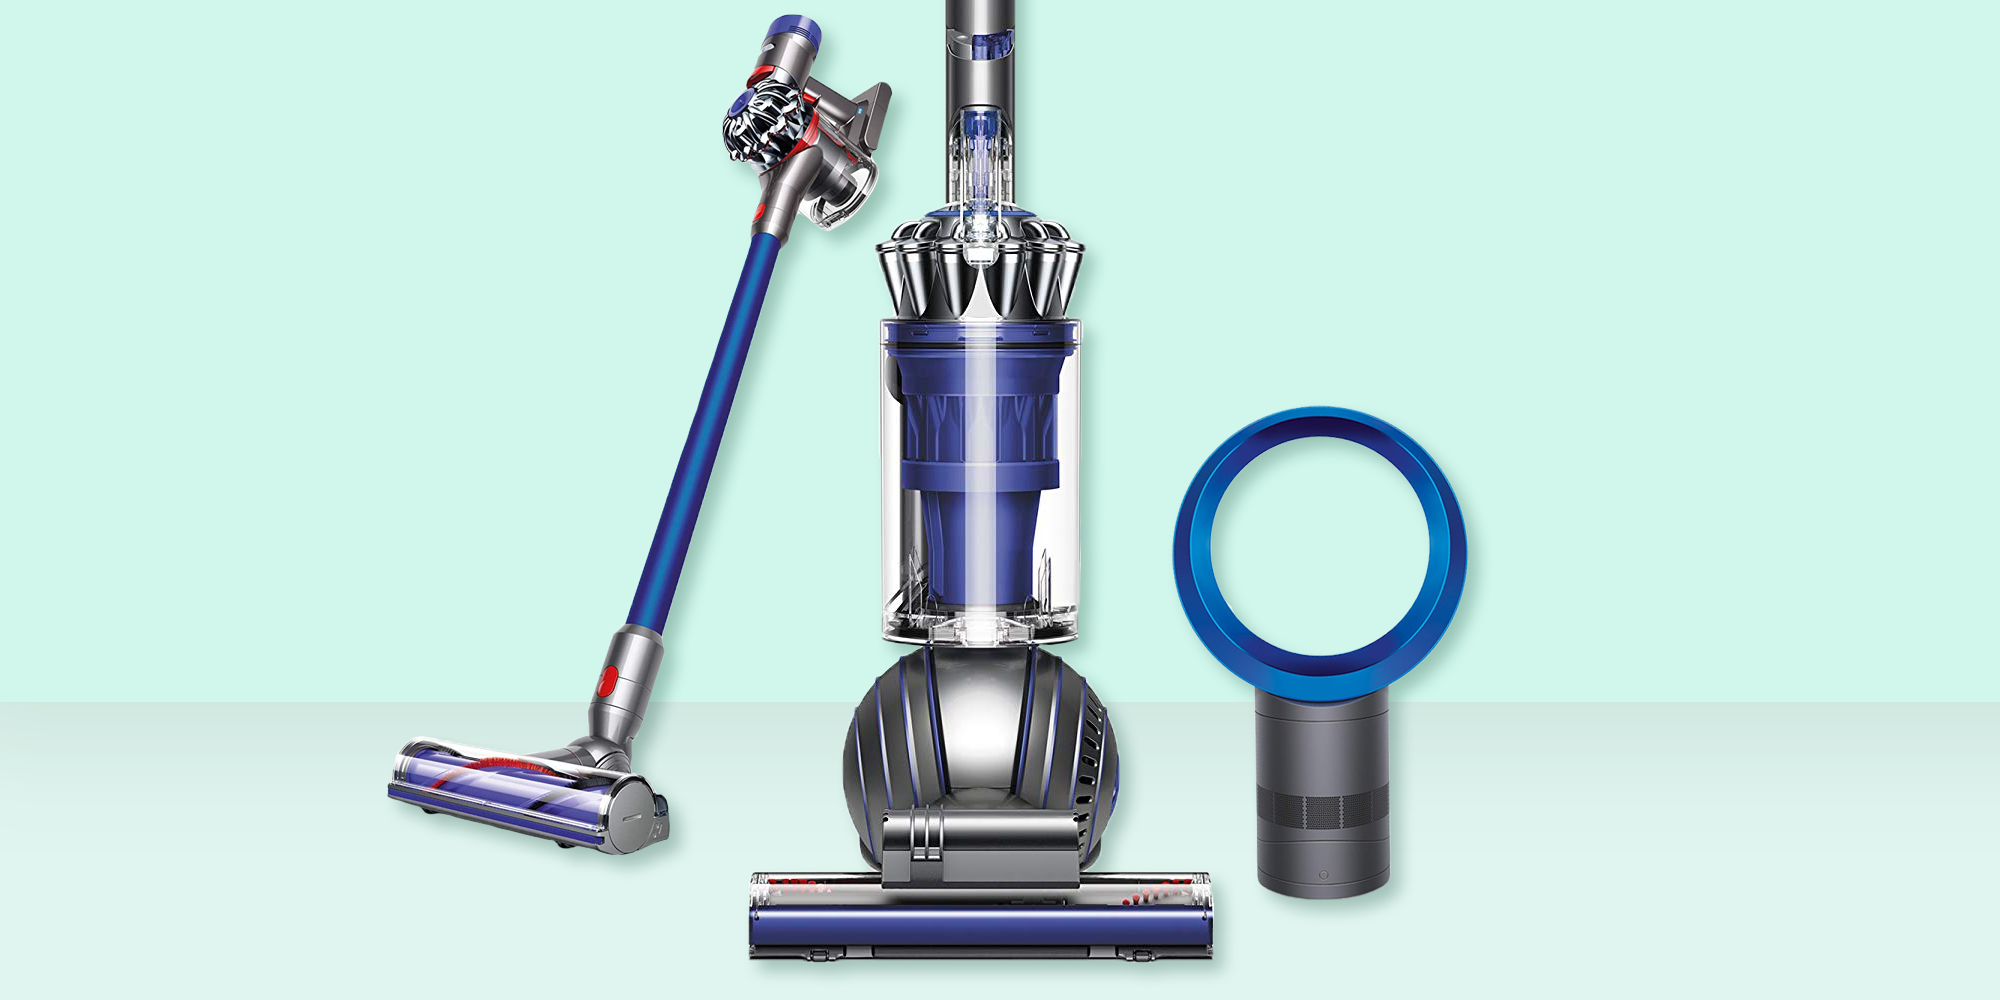 You Can Get a Dyson Vacuum or Fan for up to 42% off on Amazon Prime Day